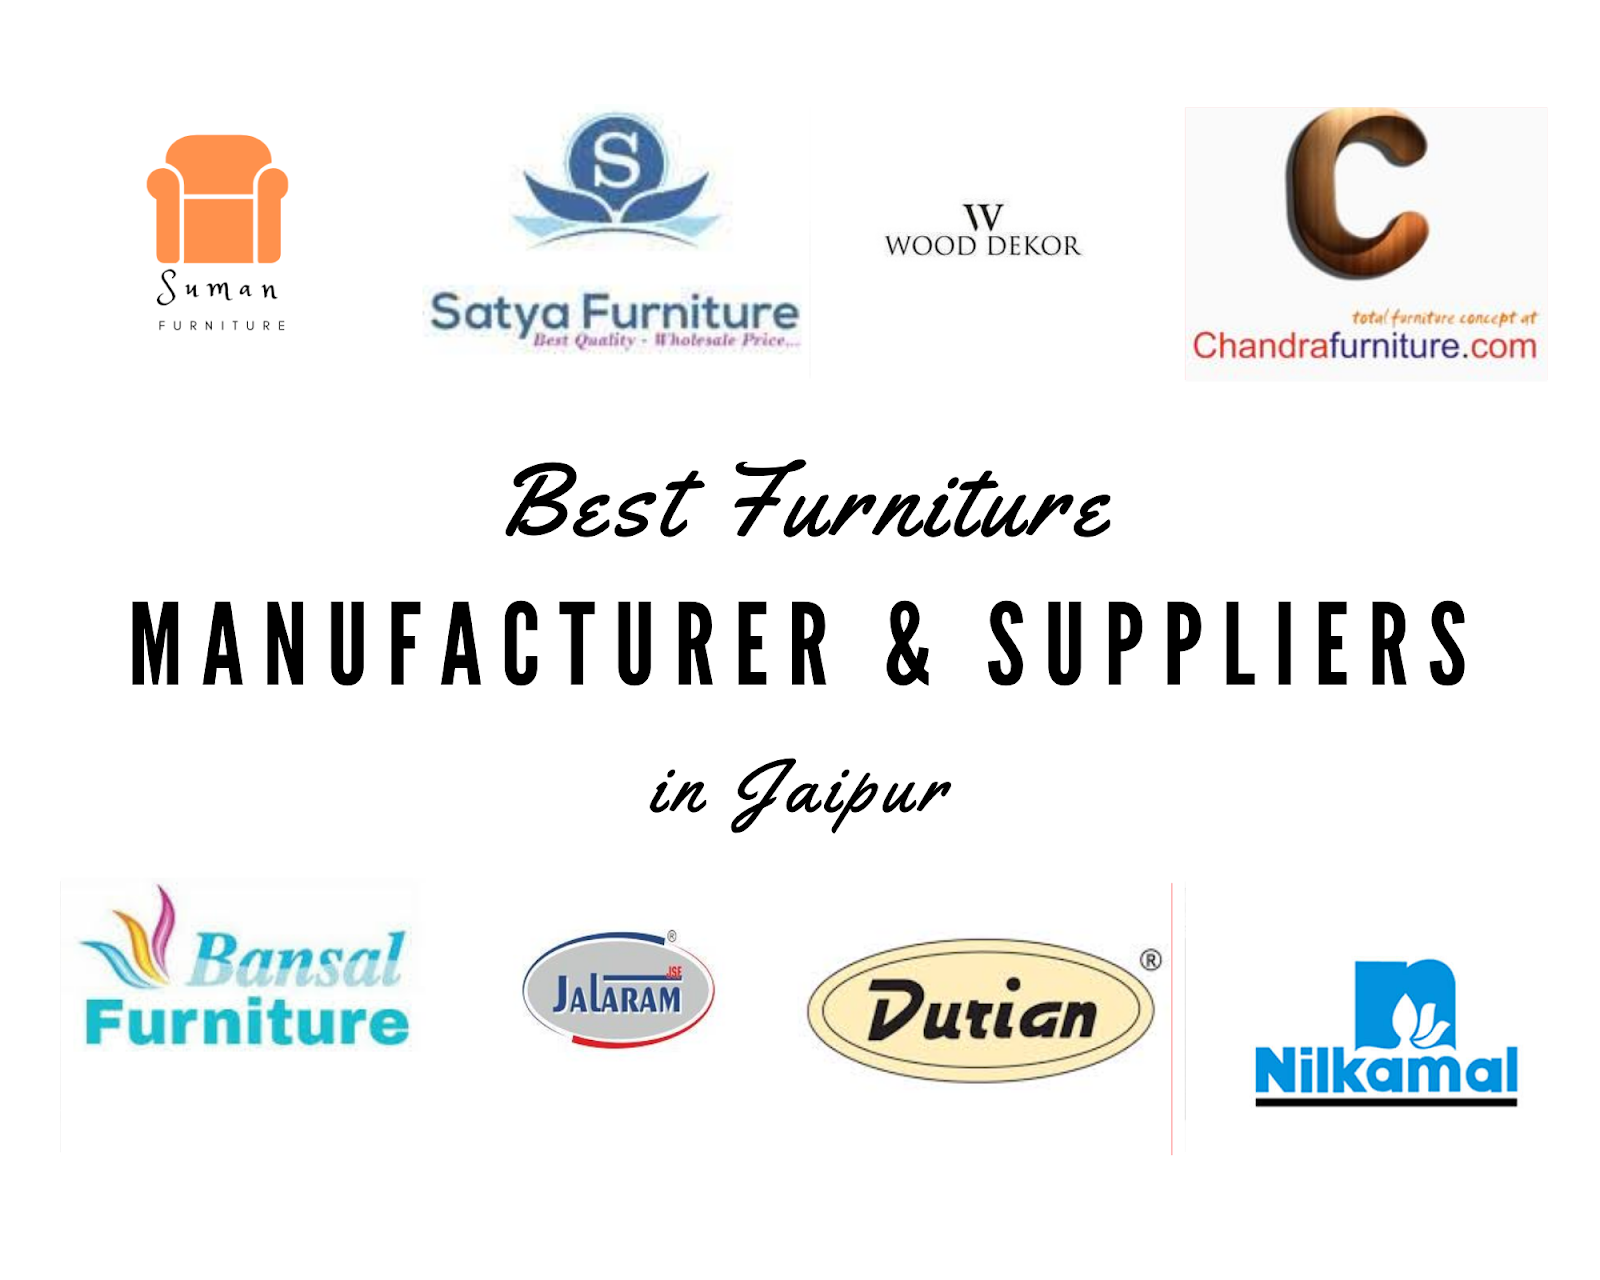 Top 11 Furniture Shops in Jaipur | Best Furniture Market in Jaipur